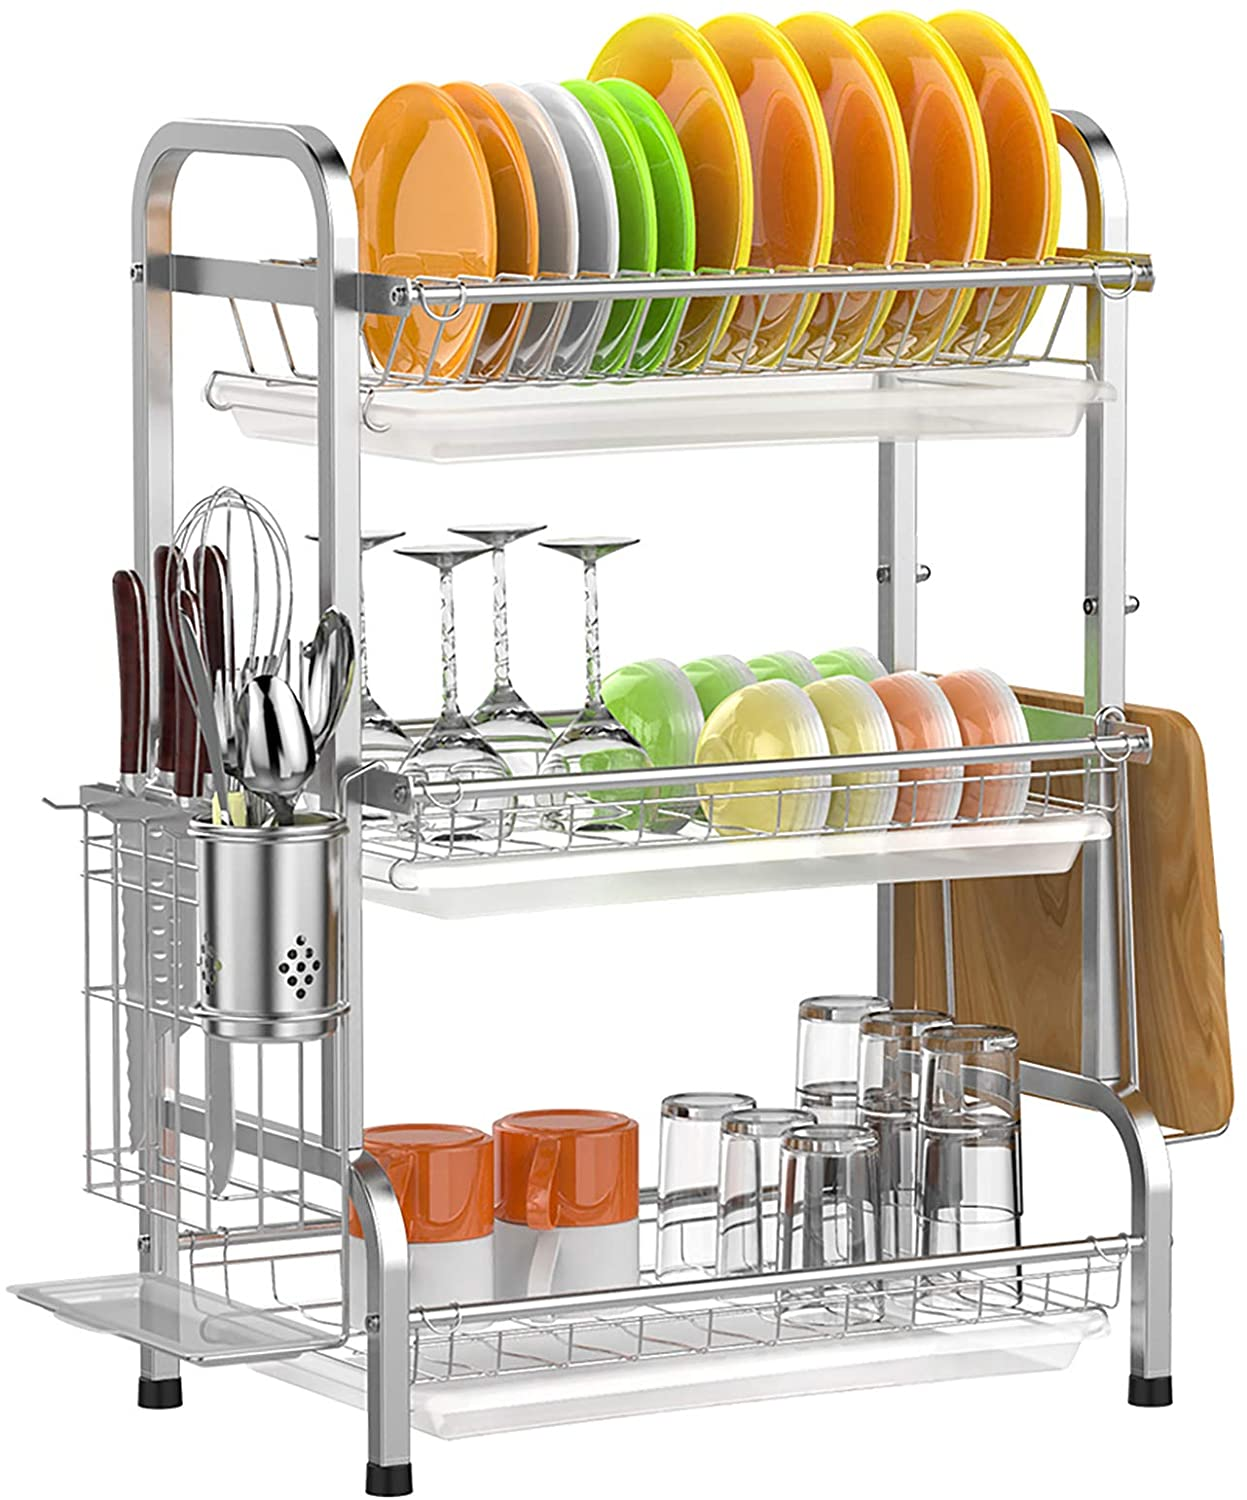 Amazon: Dish Drying Rack,Ace Teah 3 Tier Dish Drainer, Just $29.99 (Reg $49.99) after code!